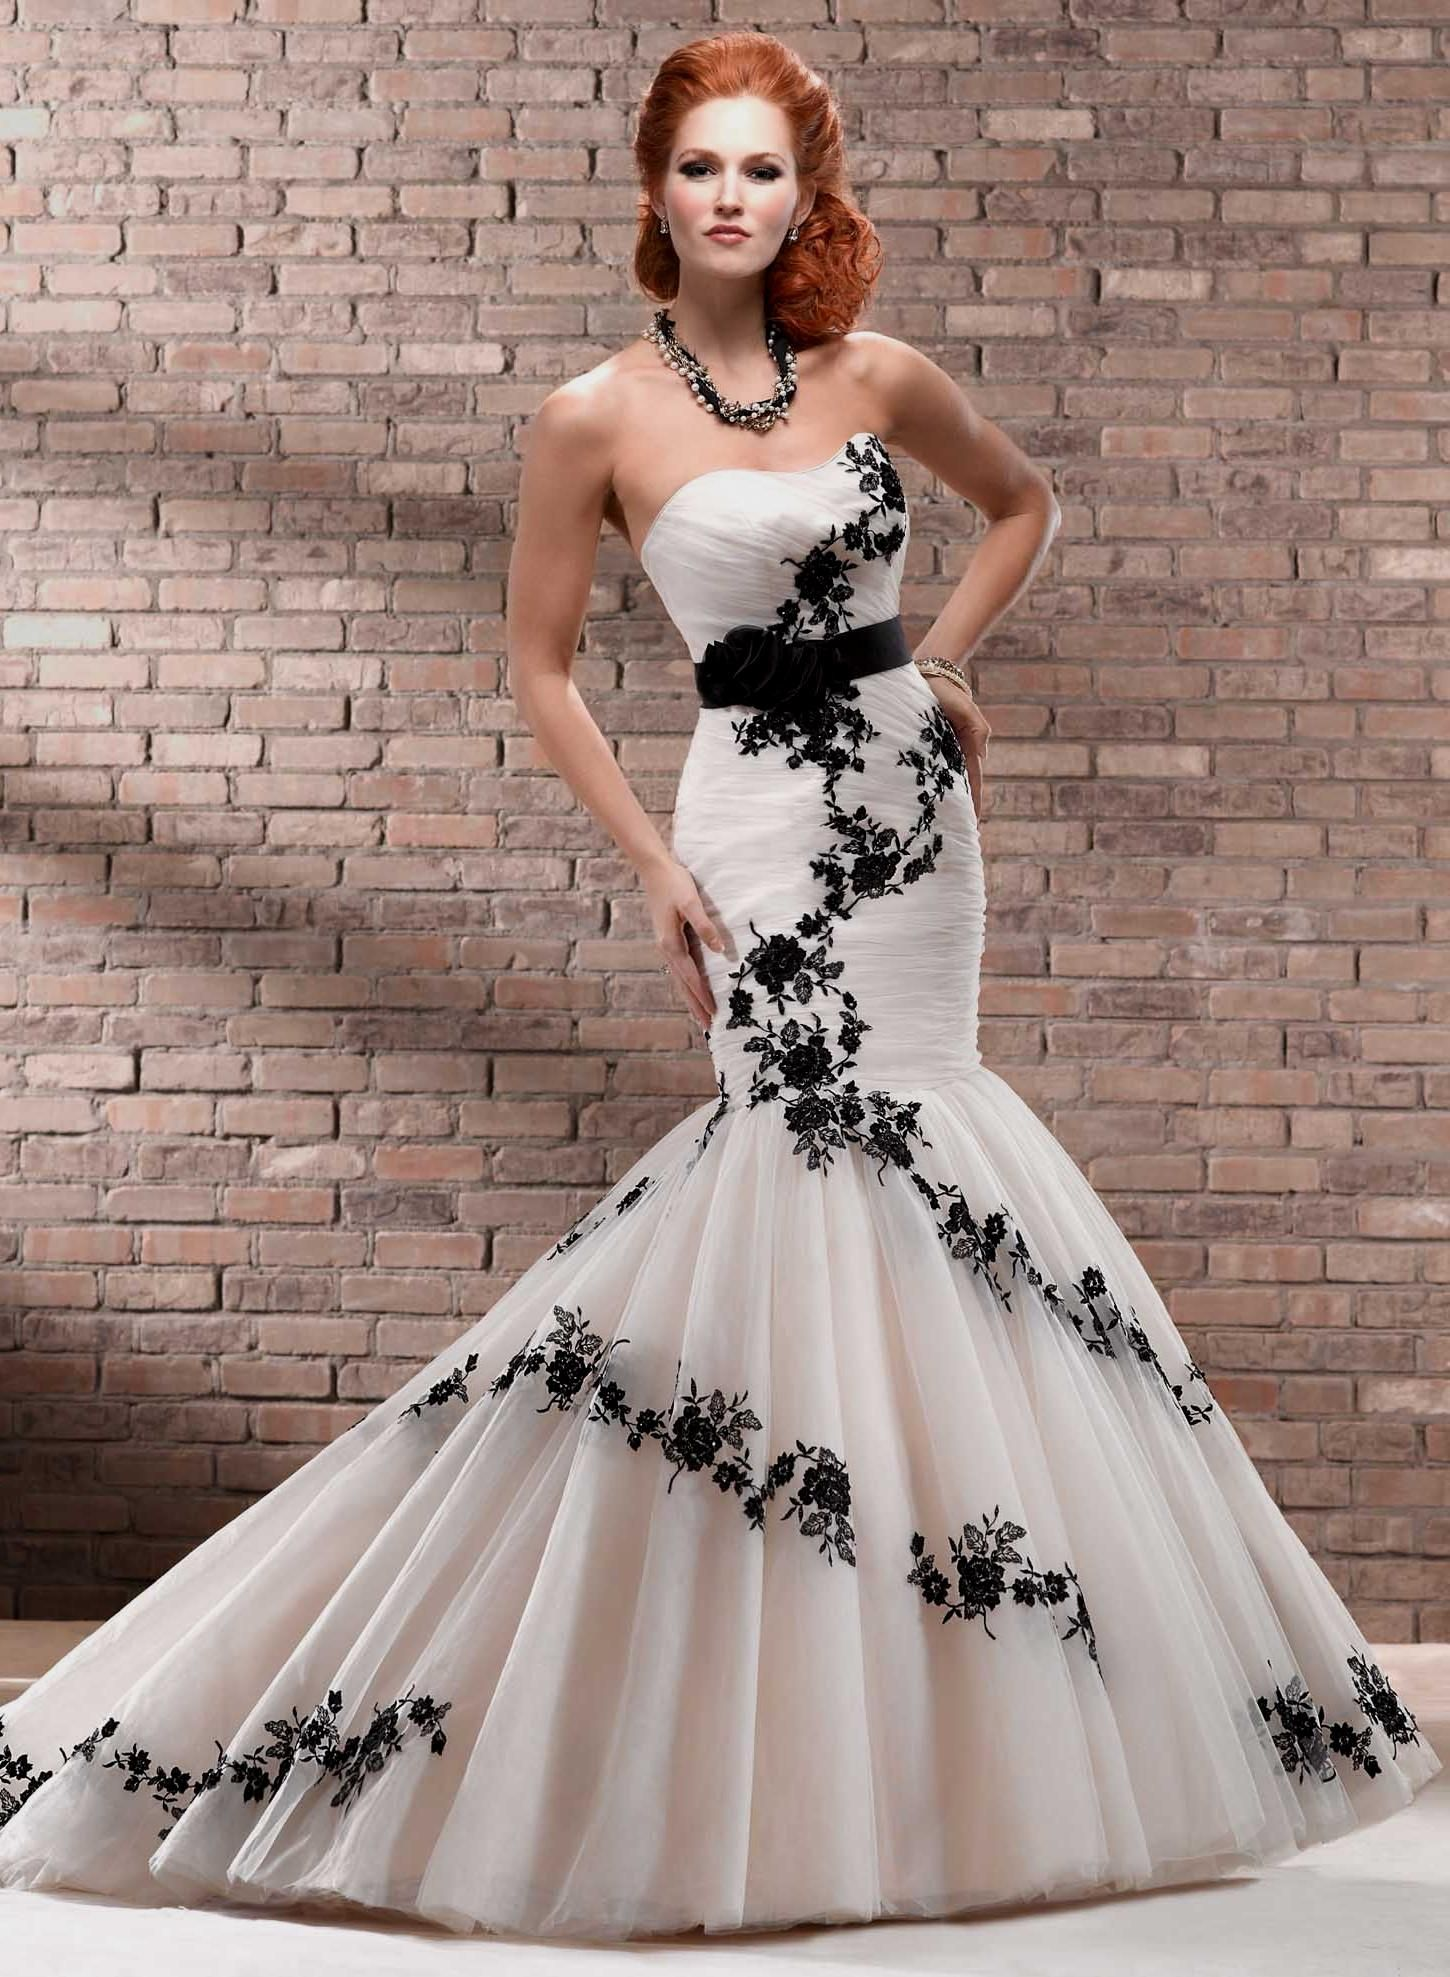 Black and Gold Dresses for Wedding - Best Dresses for Wedding Check ...